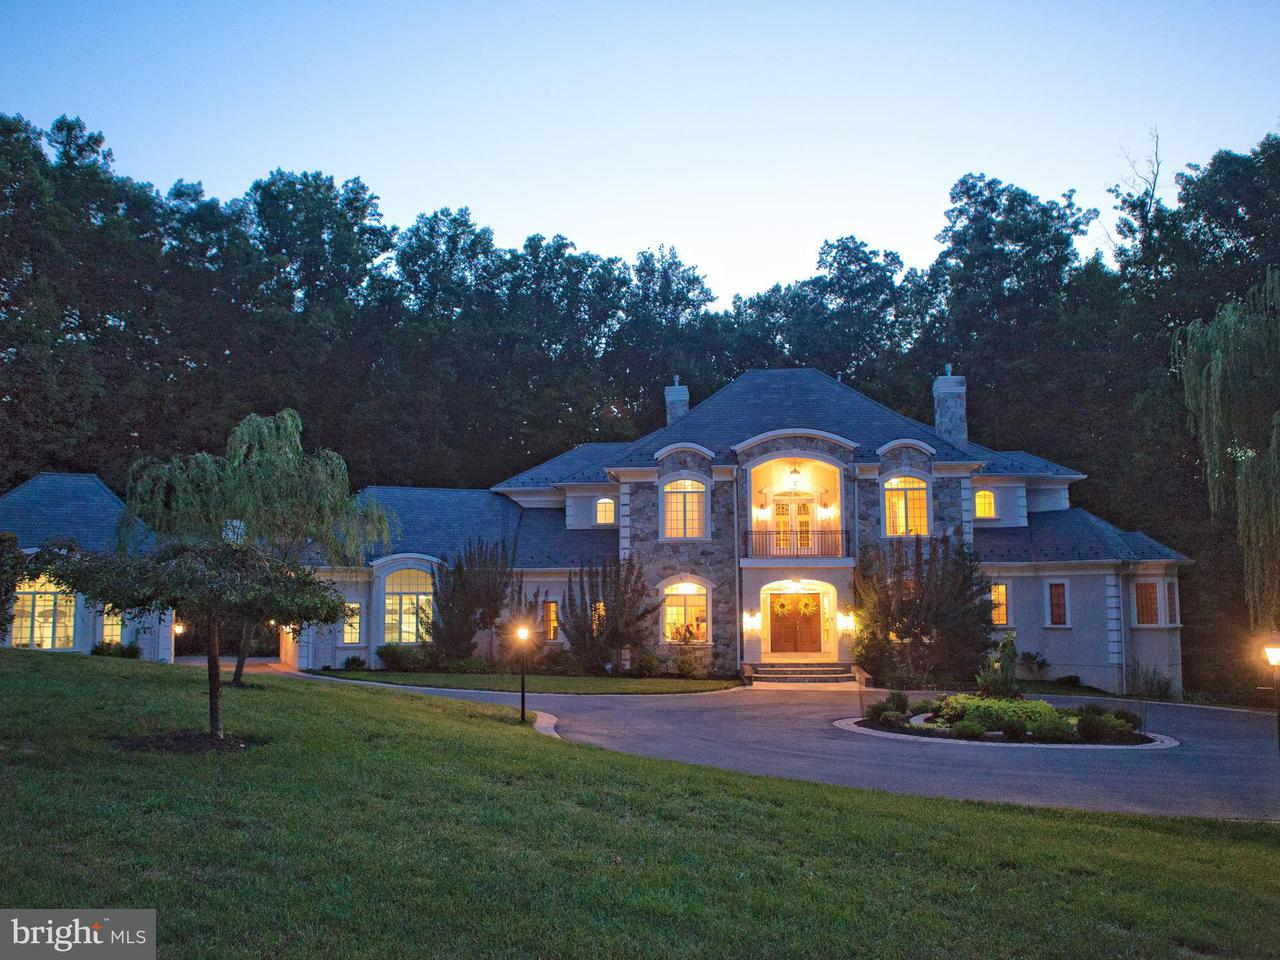 Single Family Home for Sale at 356 SPRINGVALE Road 356 SPRINGVALE Road Great Falls, Virginia 22066 United States